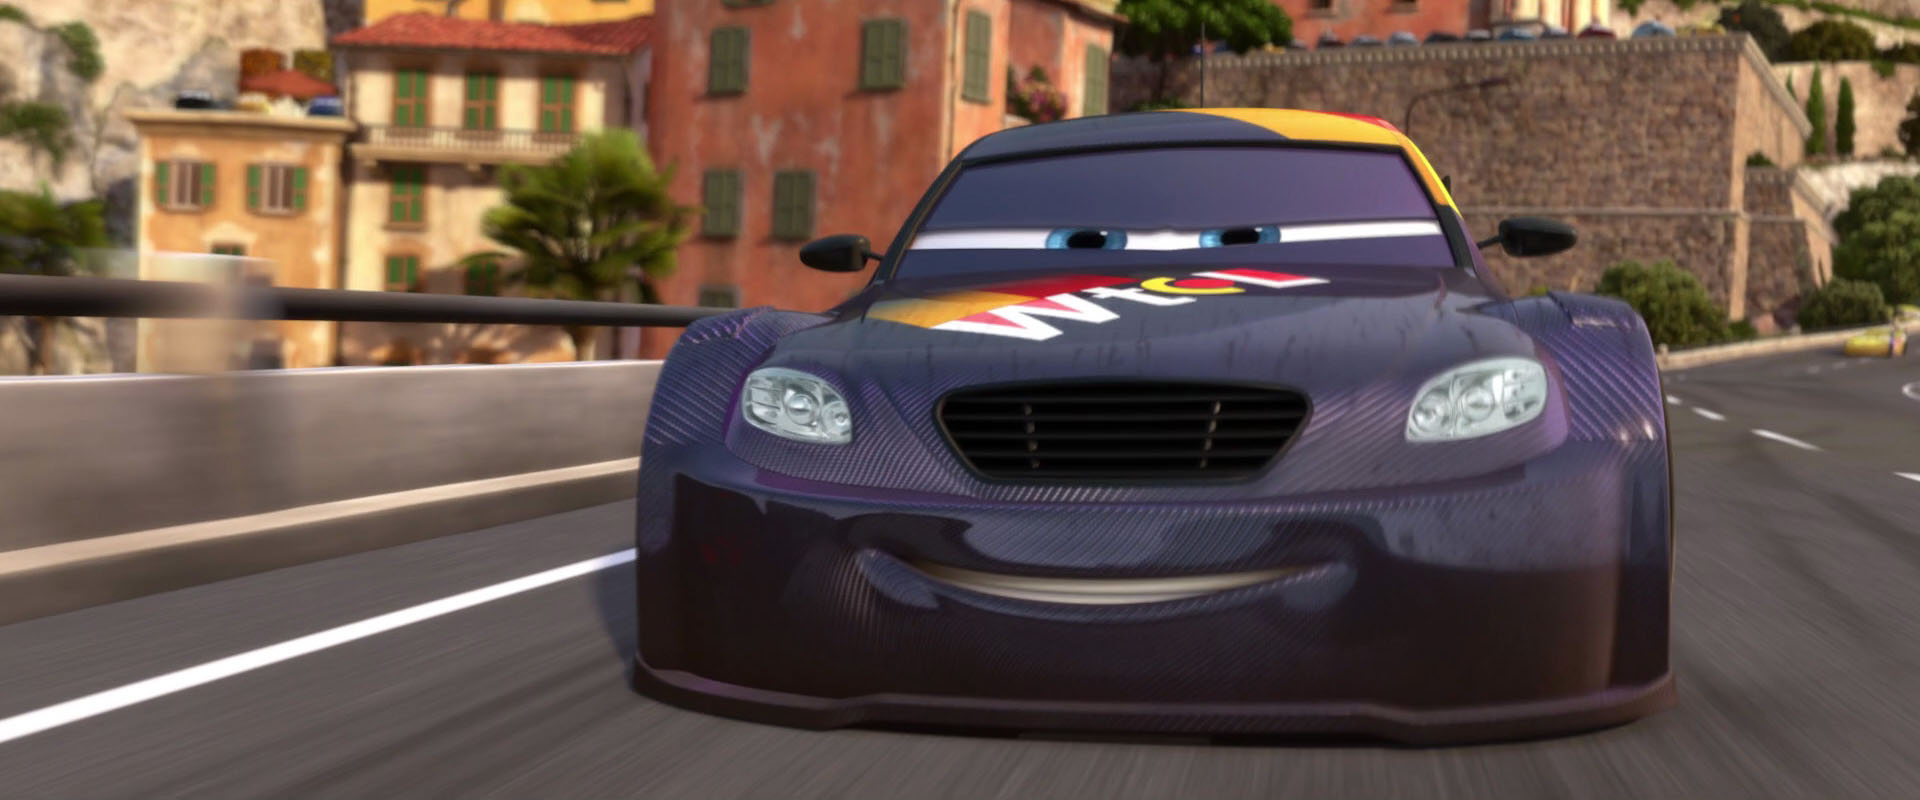 max schnell personnage character pixar disney cars 2